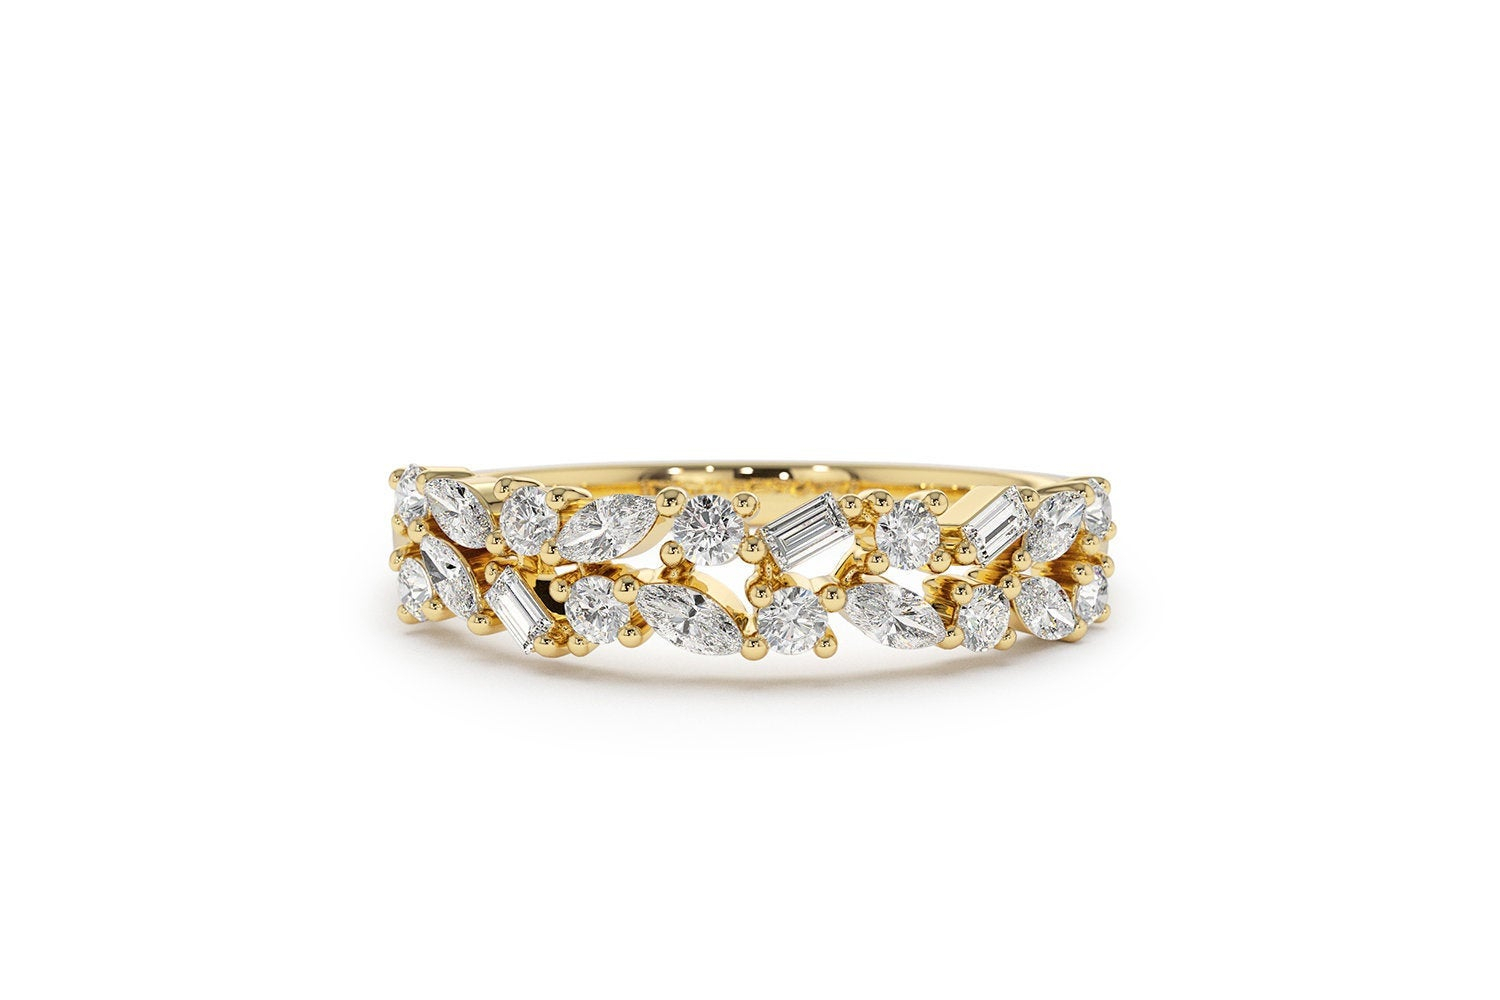 Marquise Baguette And Round Diamond Anniversary Band In 14K Gold / Ferkos Fine Jewelry Pertaining To Most Recently Released Marquise And Round Diamond Alternating Anniversary Bands In Rose Gold (Gallery 9 of 25)